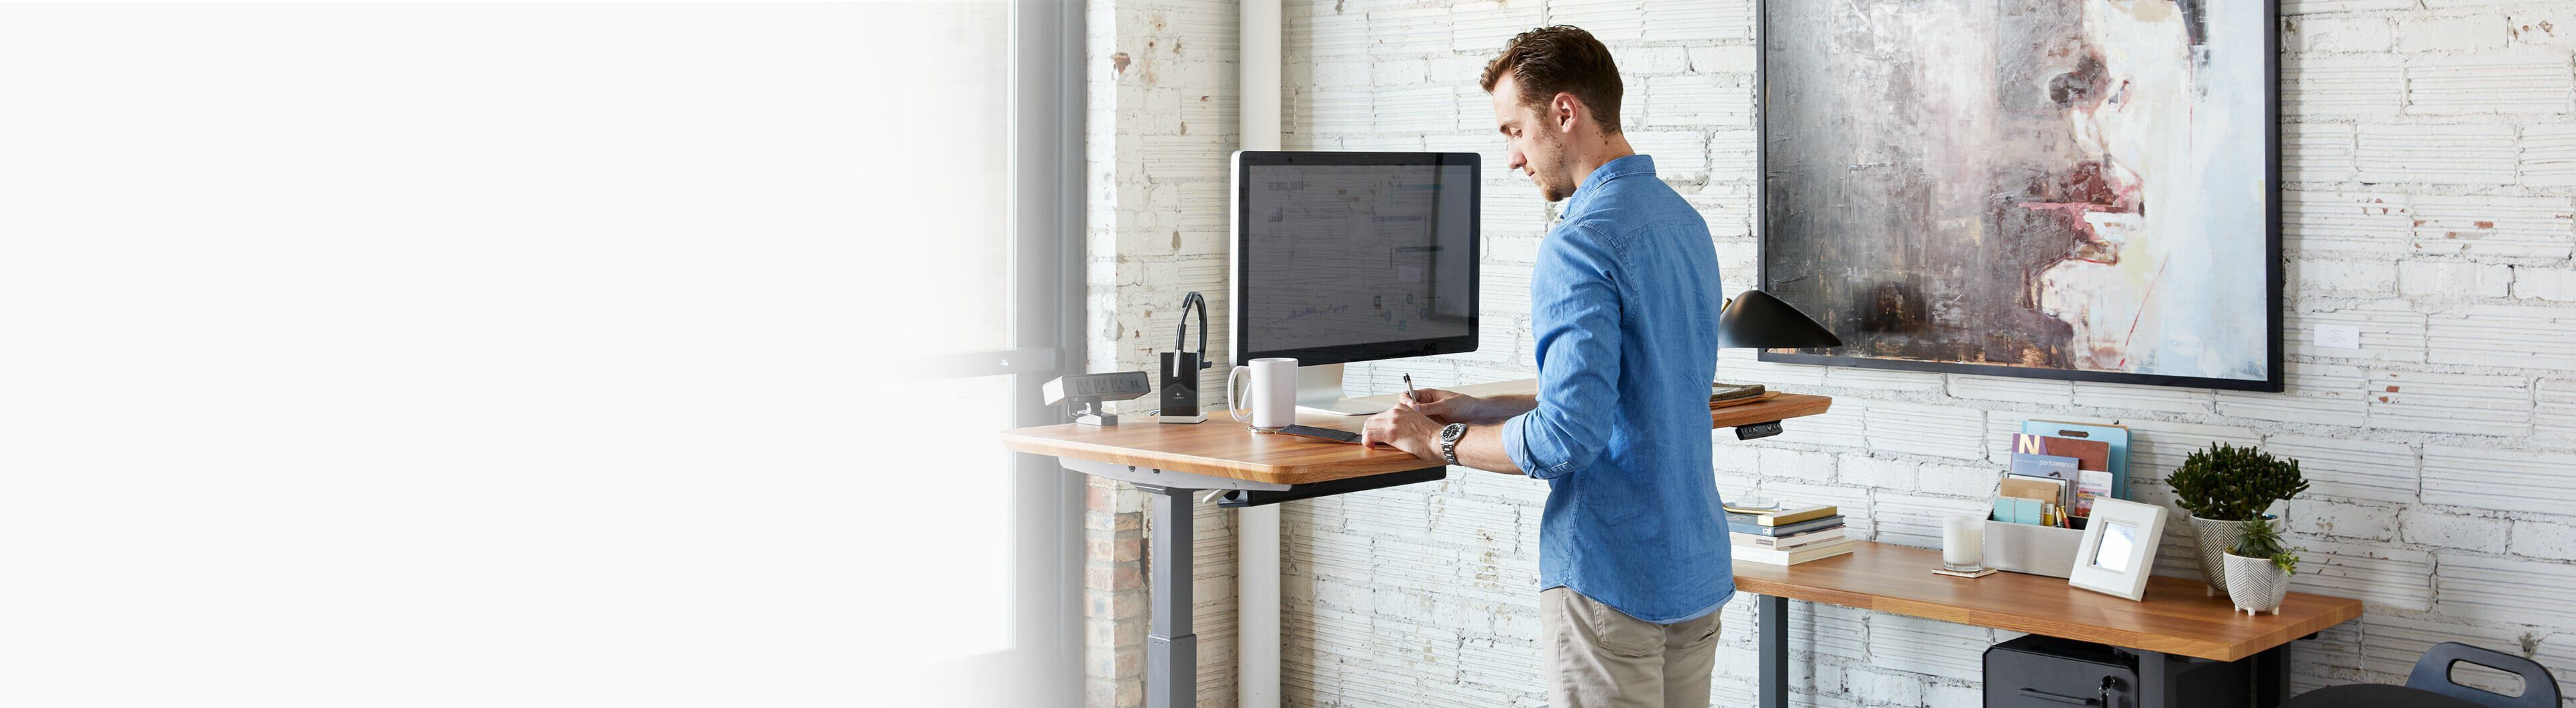 professional working at electric standing desk in a home office